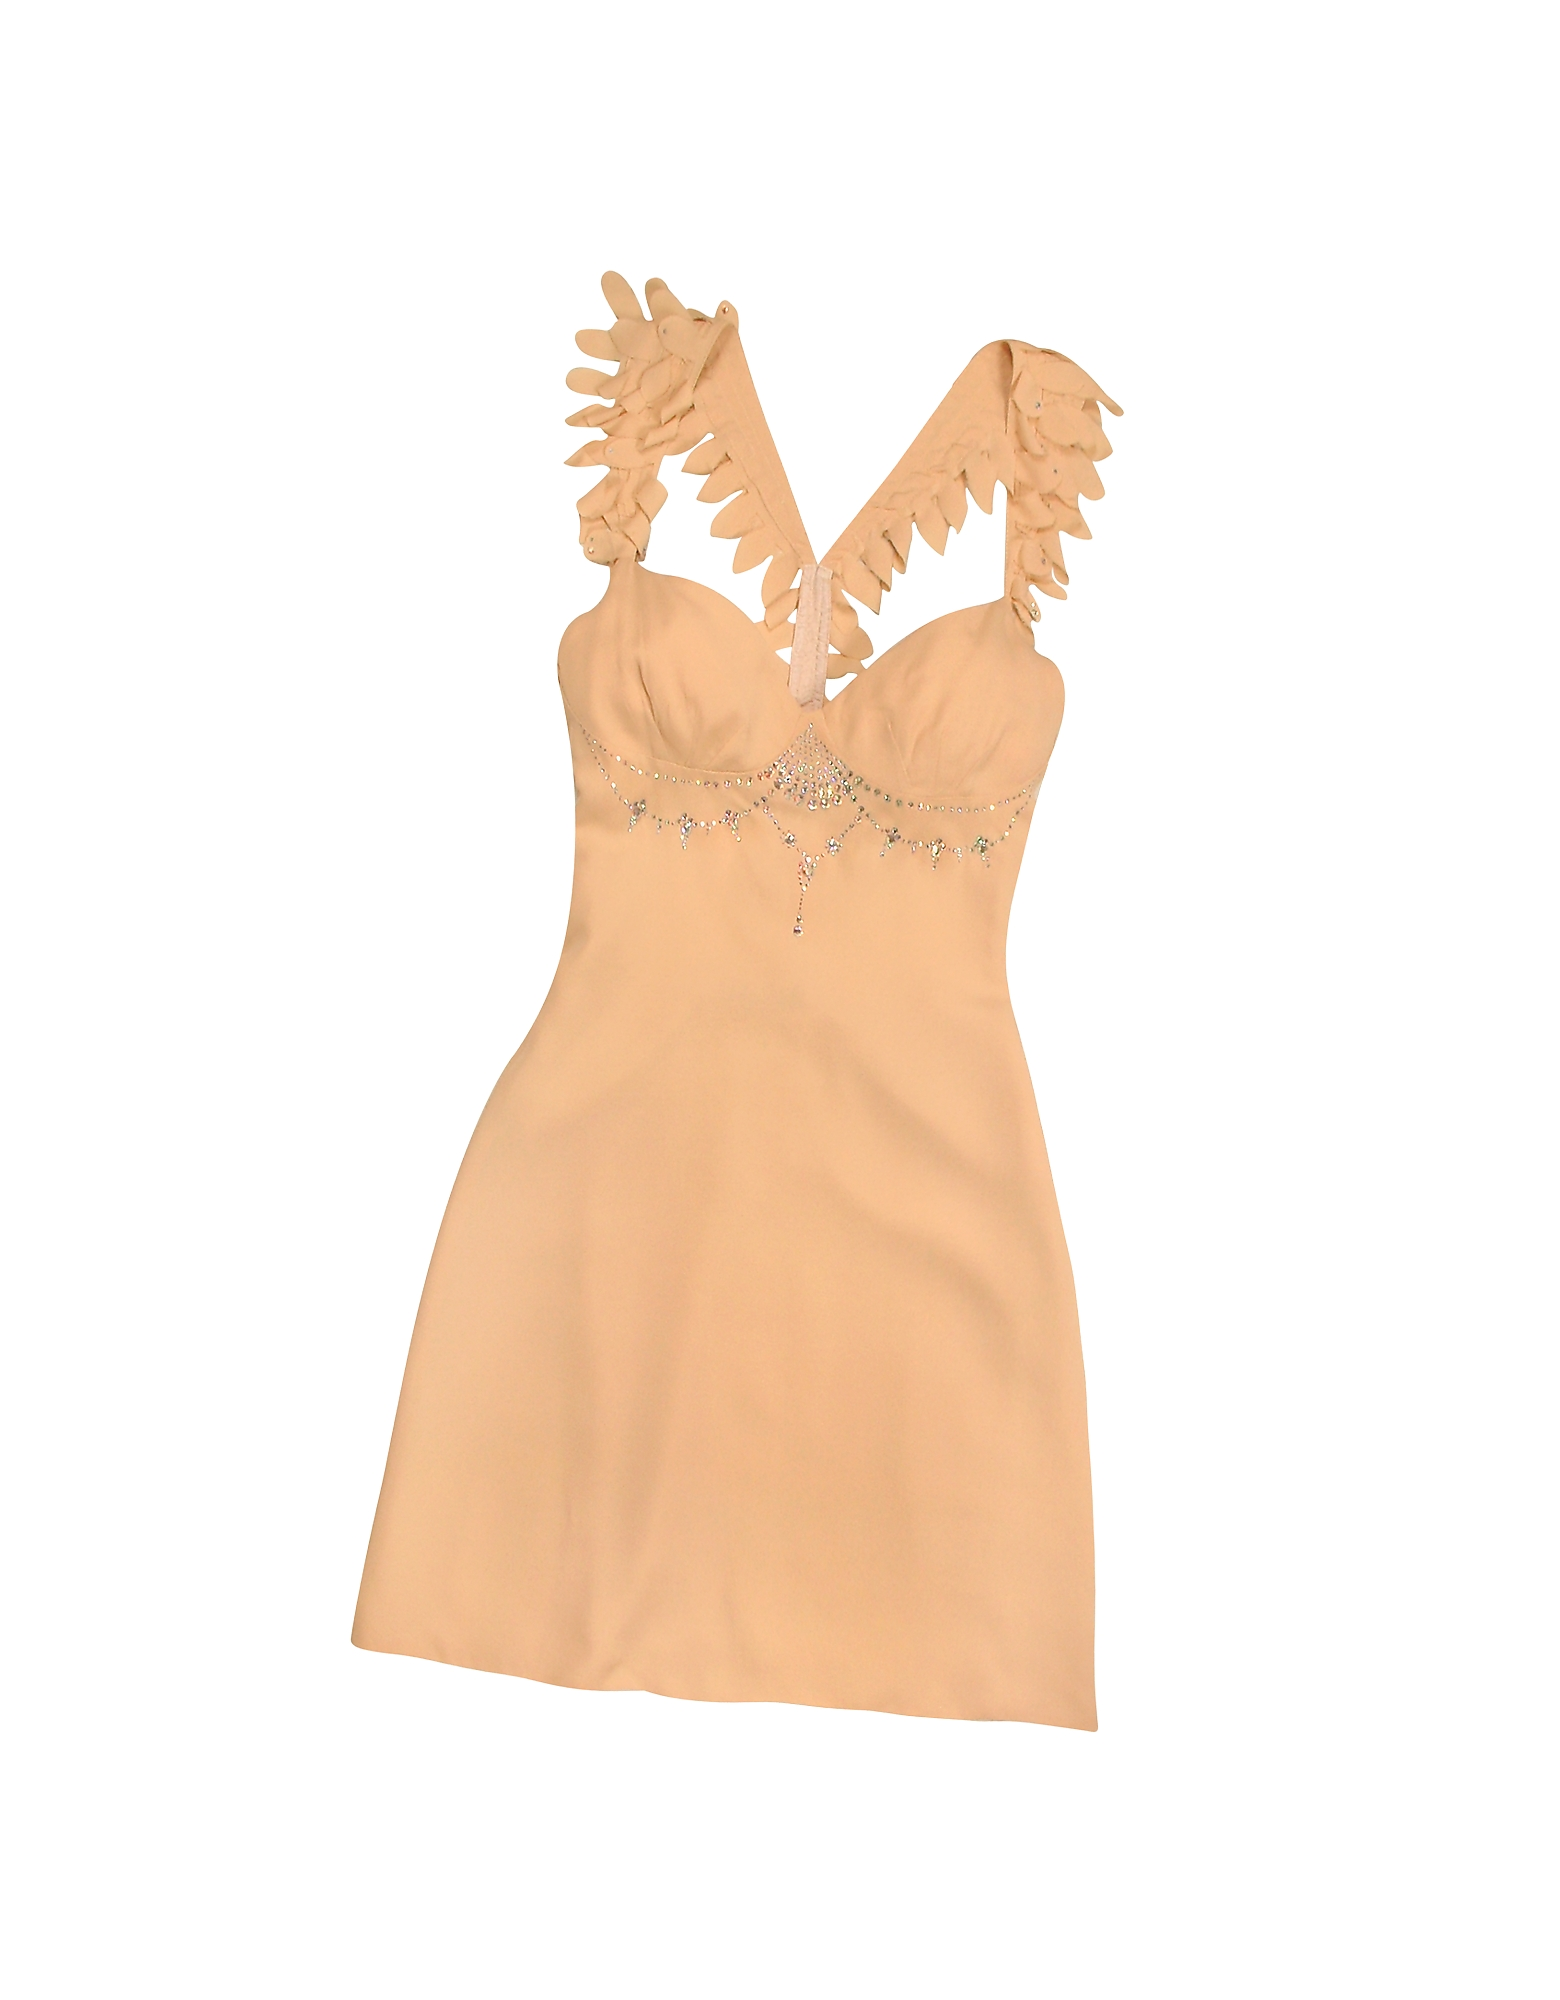 Hafize Ozbudak Tops & Co, Peach Crystal Decorated Silk Crepe Dress